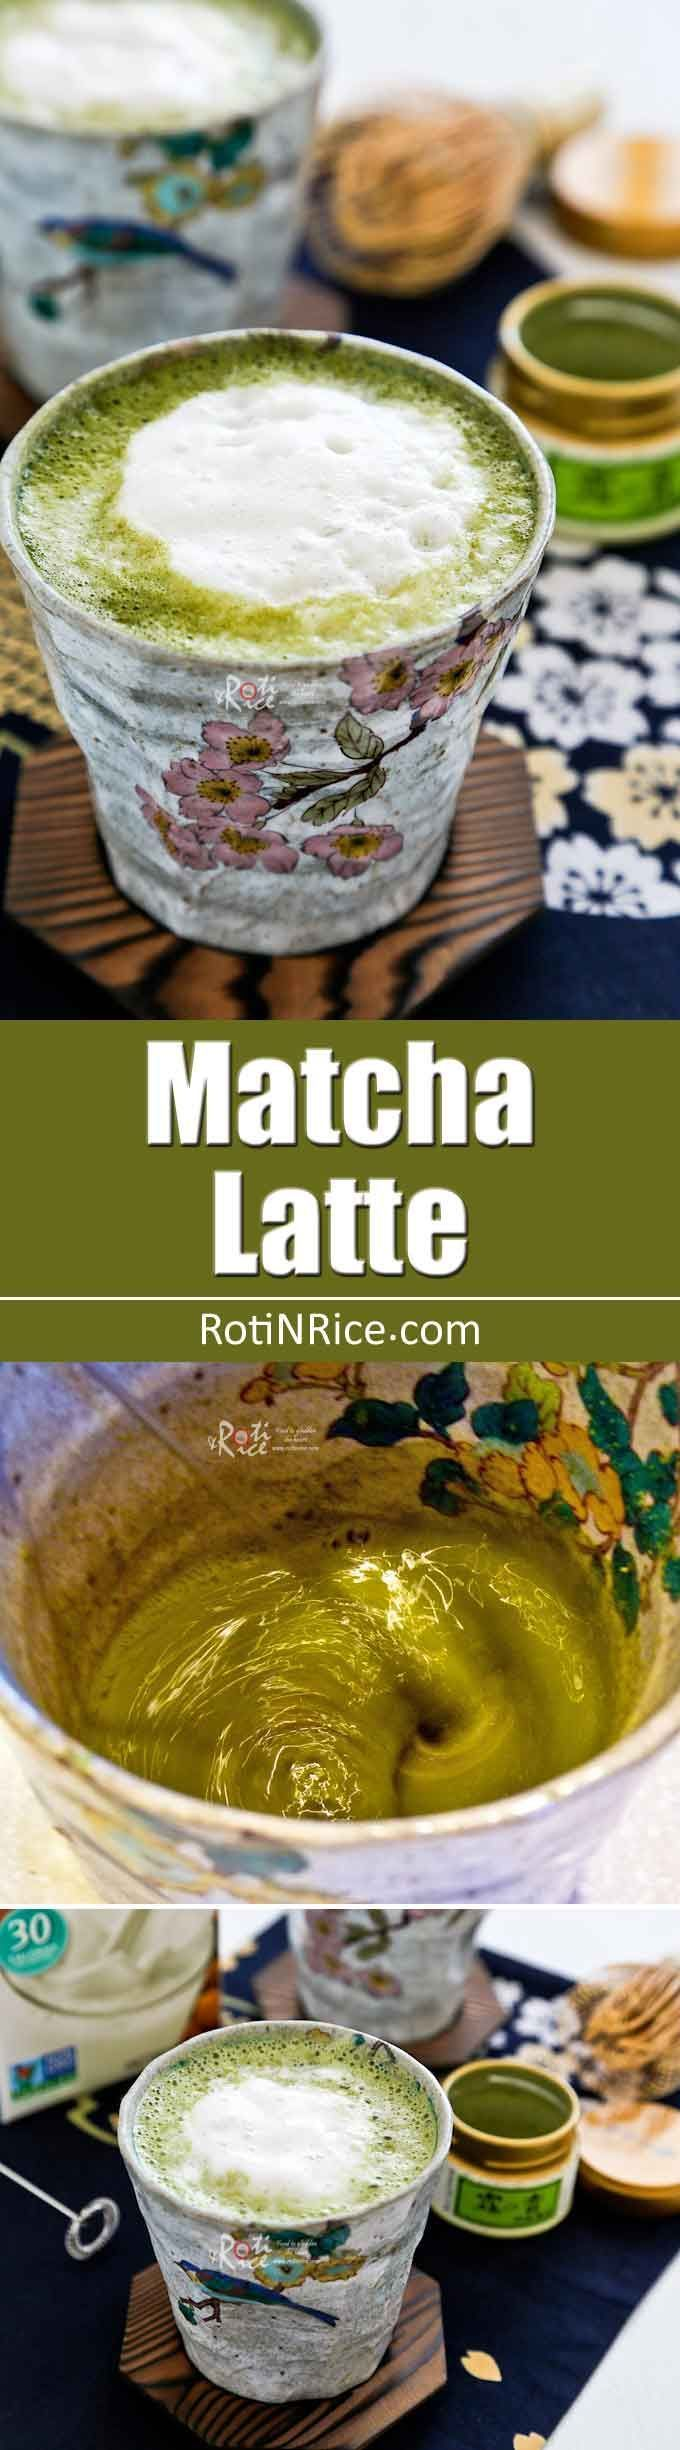 Frothy Matcha Latte, a delicious alternative to caffe latte. Matcha (green tea powder) combined with your choice of almond, soy, coconut or cow's milk. | RotiNRice.com